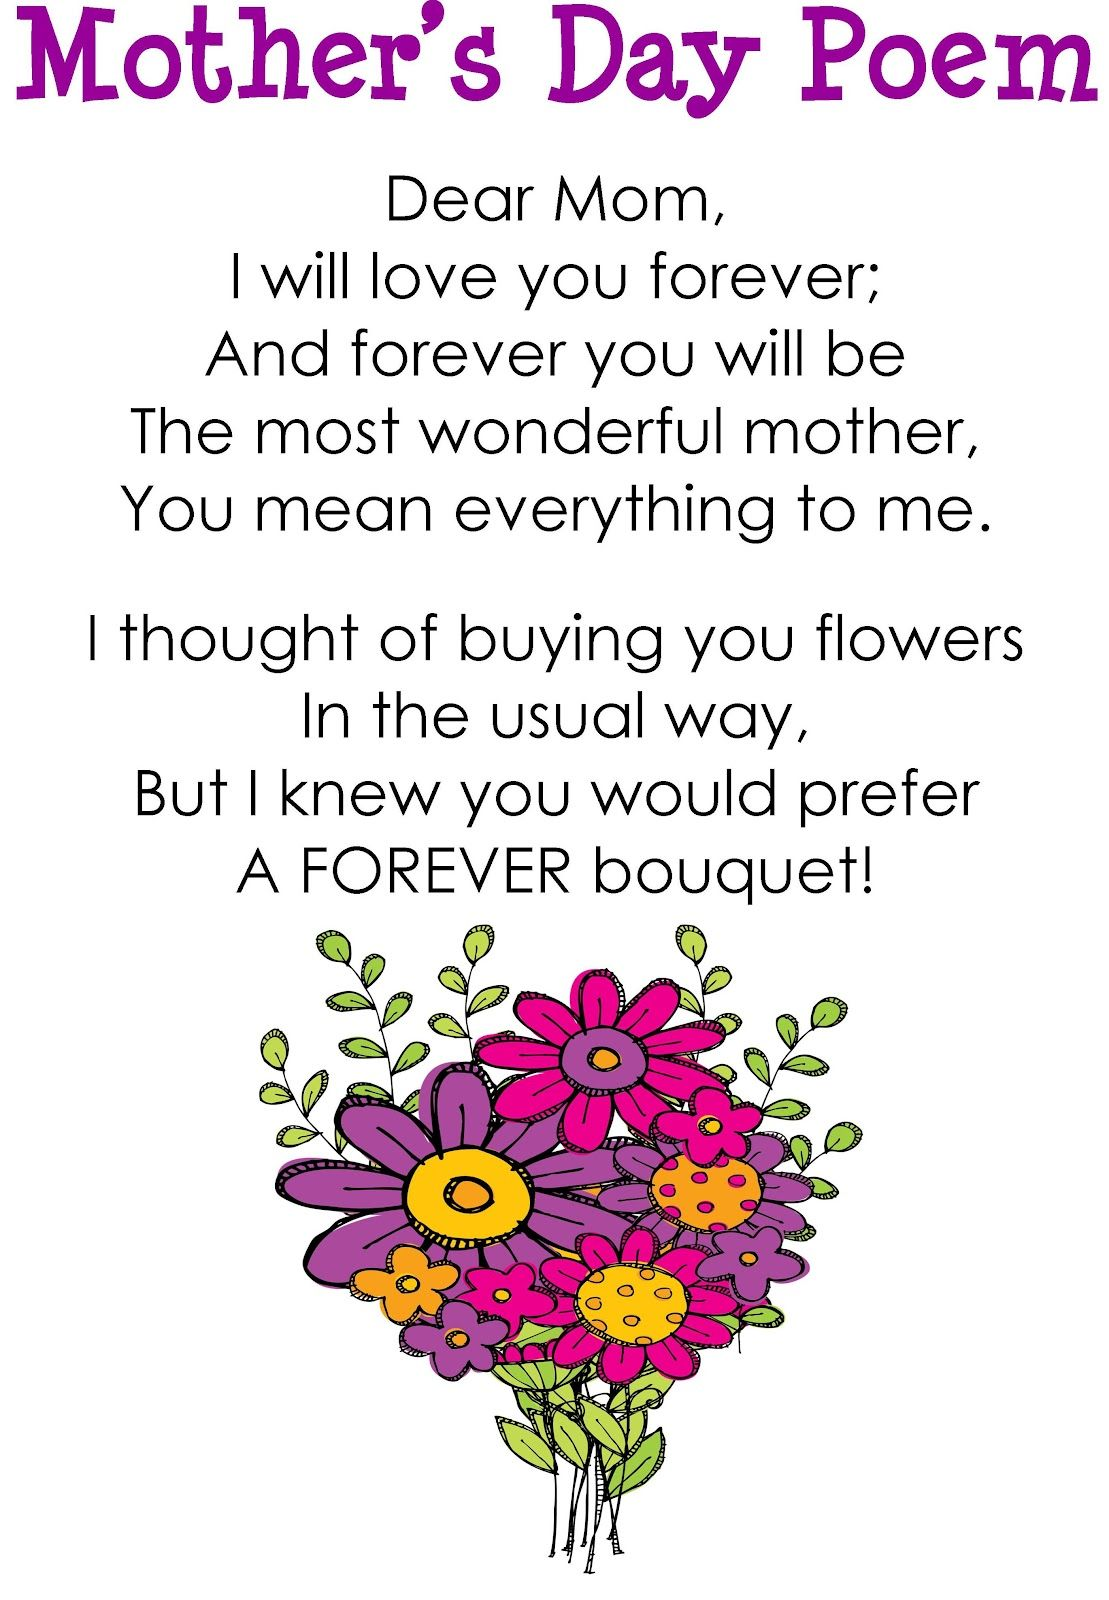 Mothers Day Quotes Kindercraze A Kindergarten Blog Mother's Day Forever Bouquet